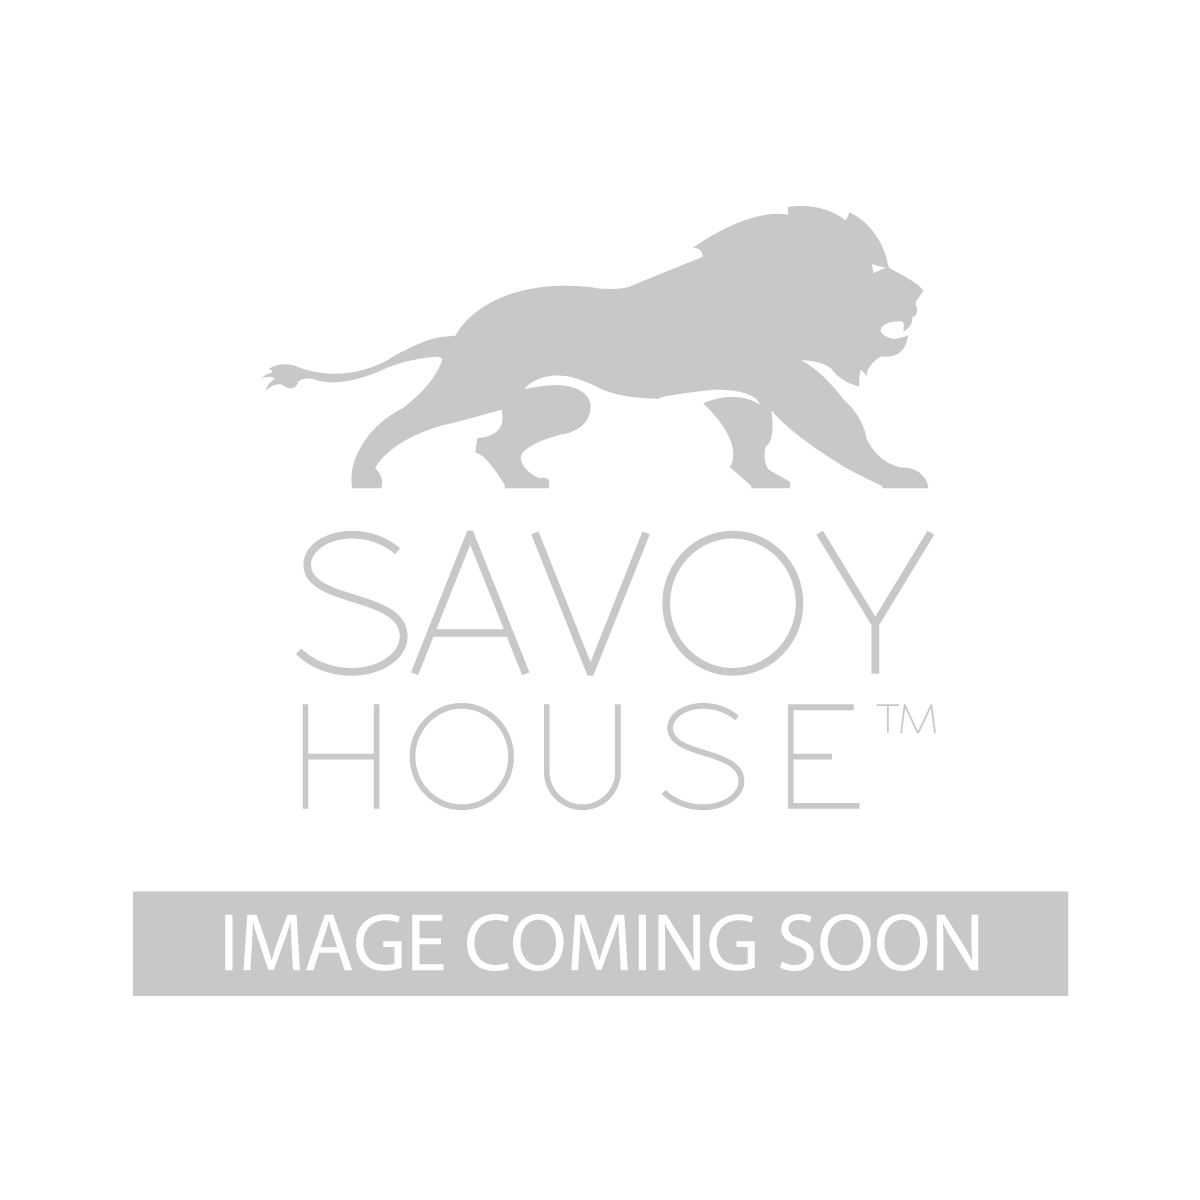 7 6099 24 109 galea 24 light chandelier by savoy house for Savoy house com